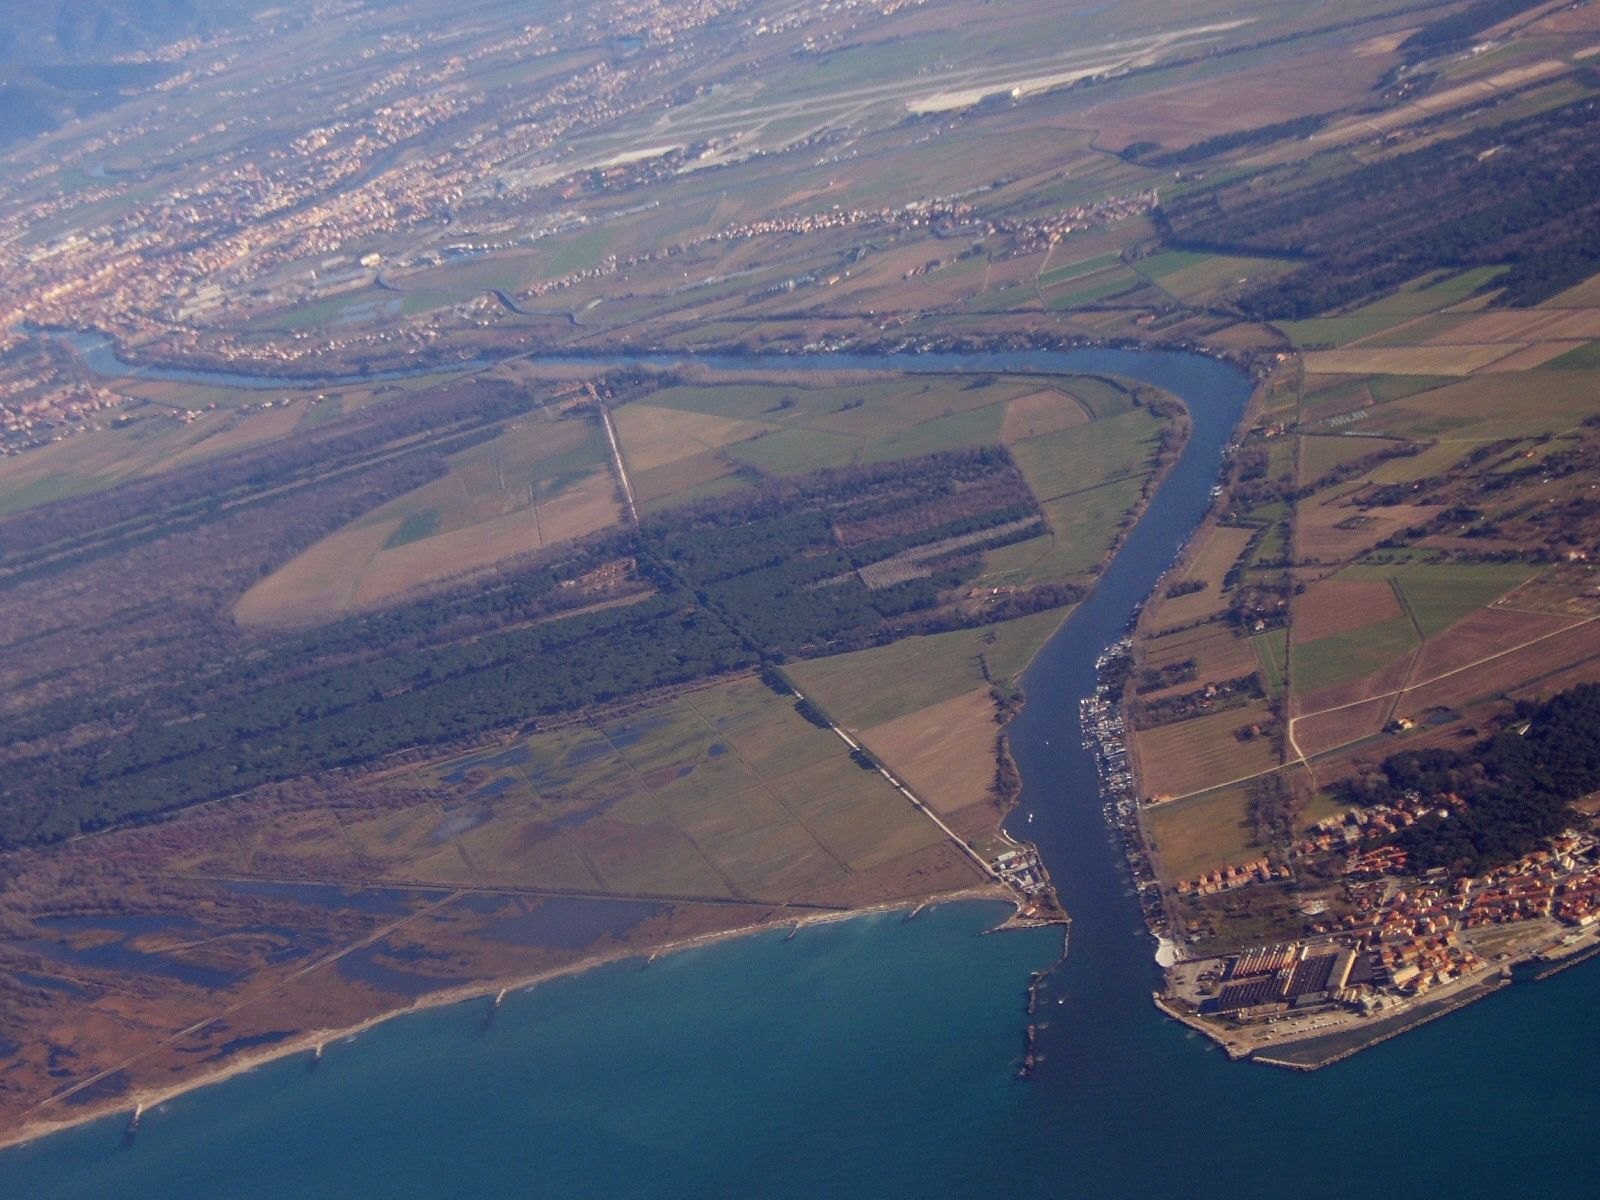 Arno_Mouth_Italy_aerial_view[1]